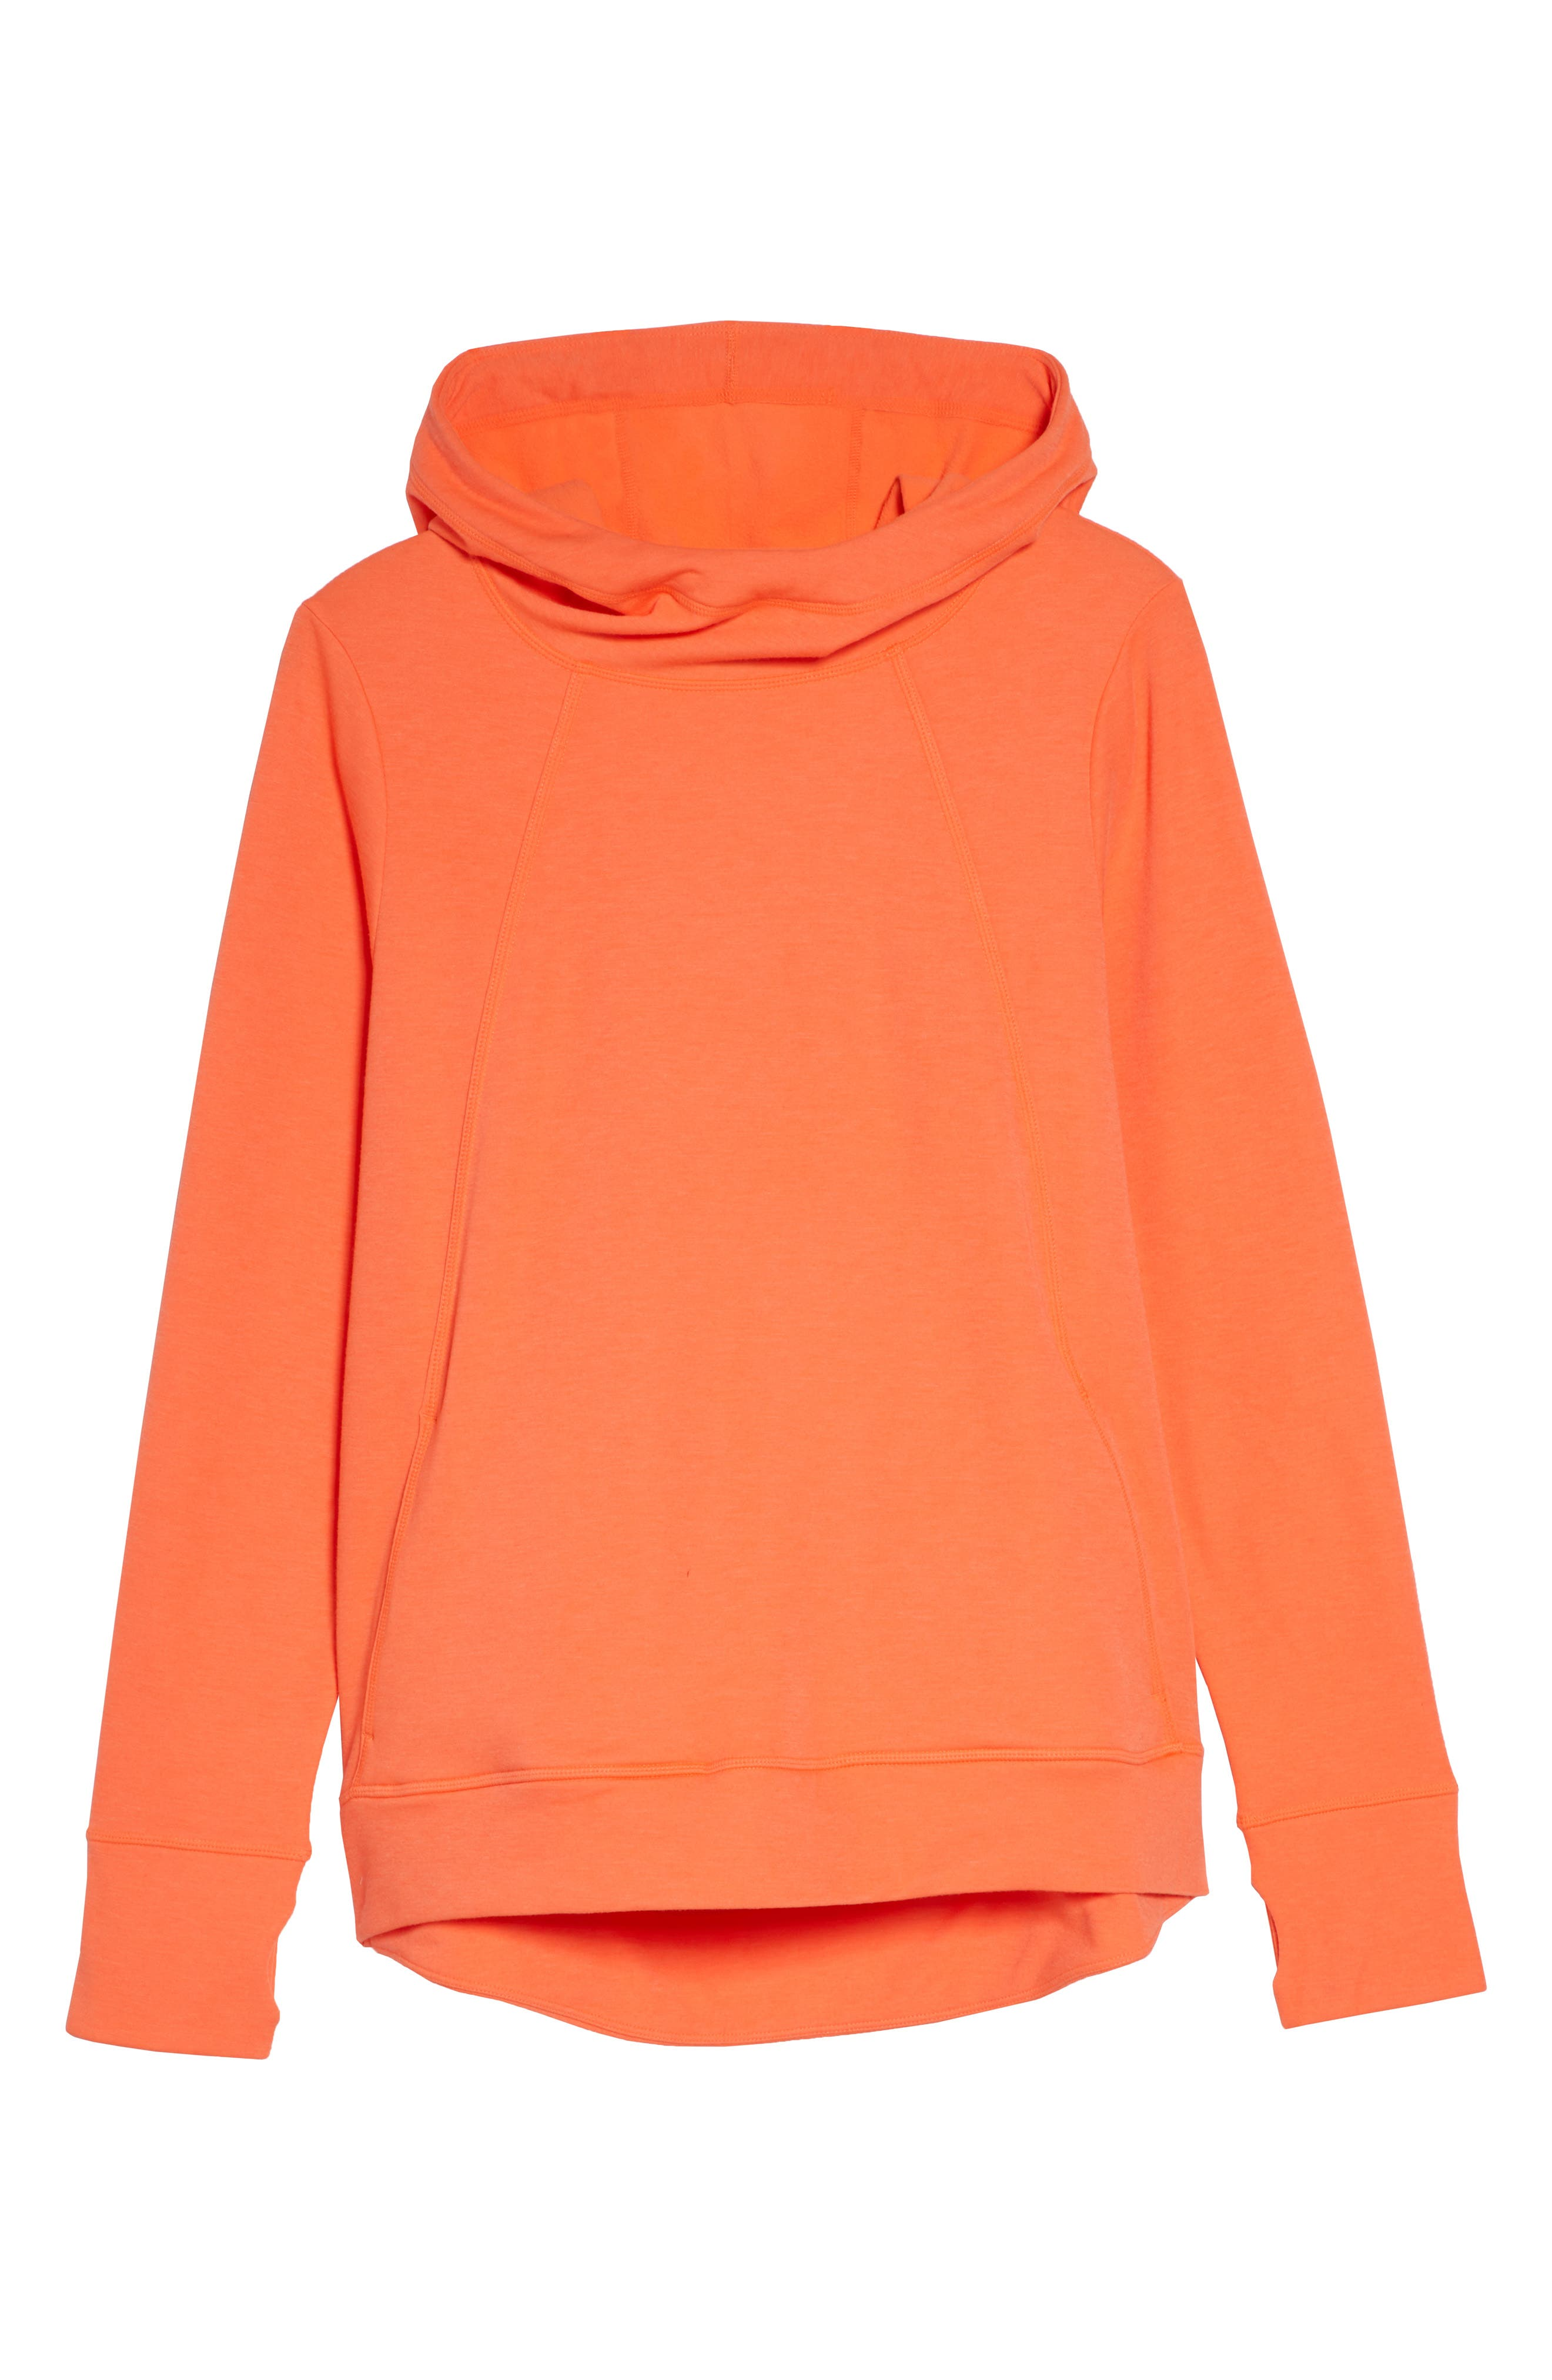 Pleated Tech Run Hoodie,                             Alternate thumbnail 7, color,                             CORAL